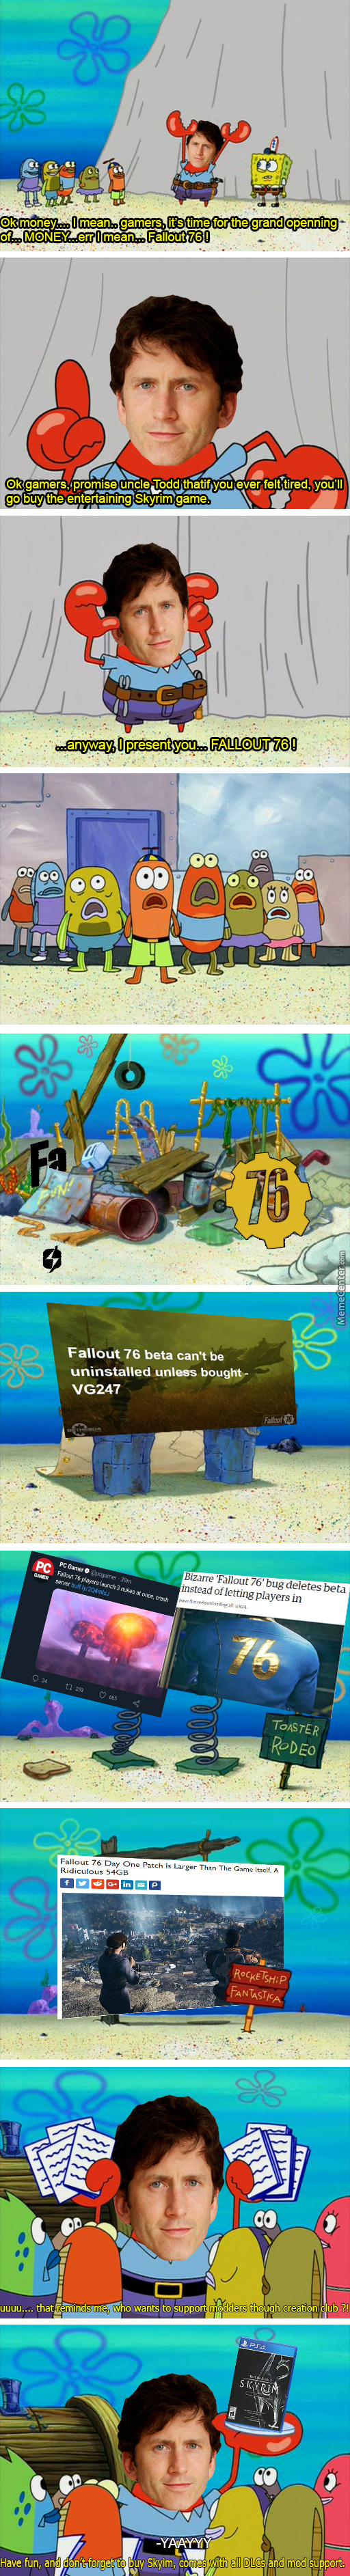 Fallout 76 In A Nutshell